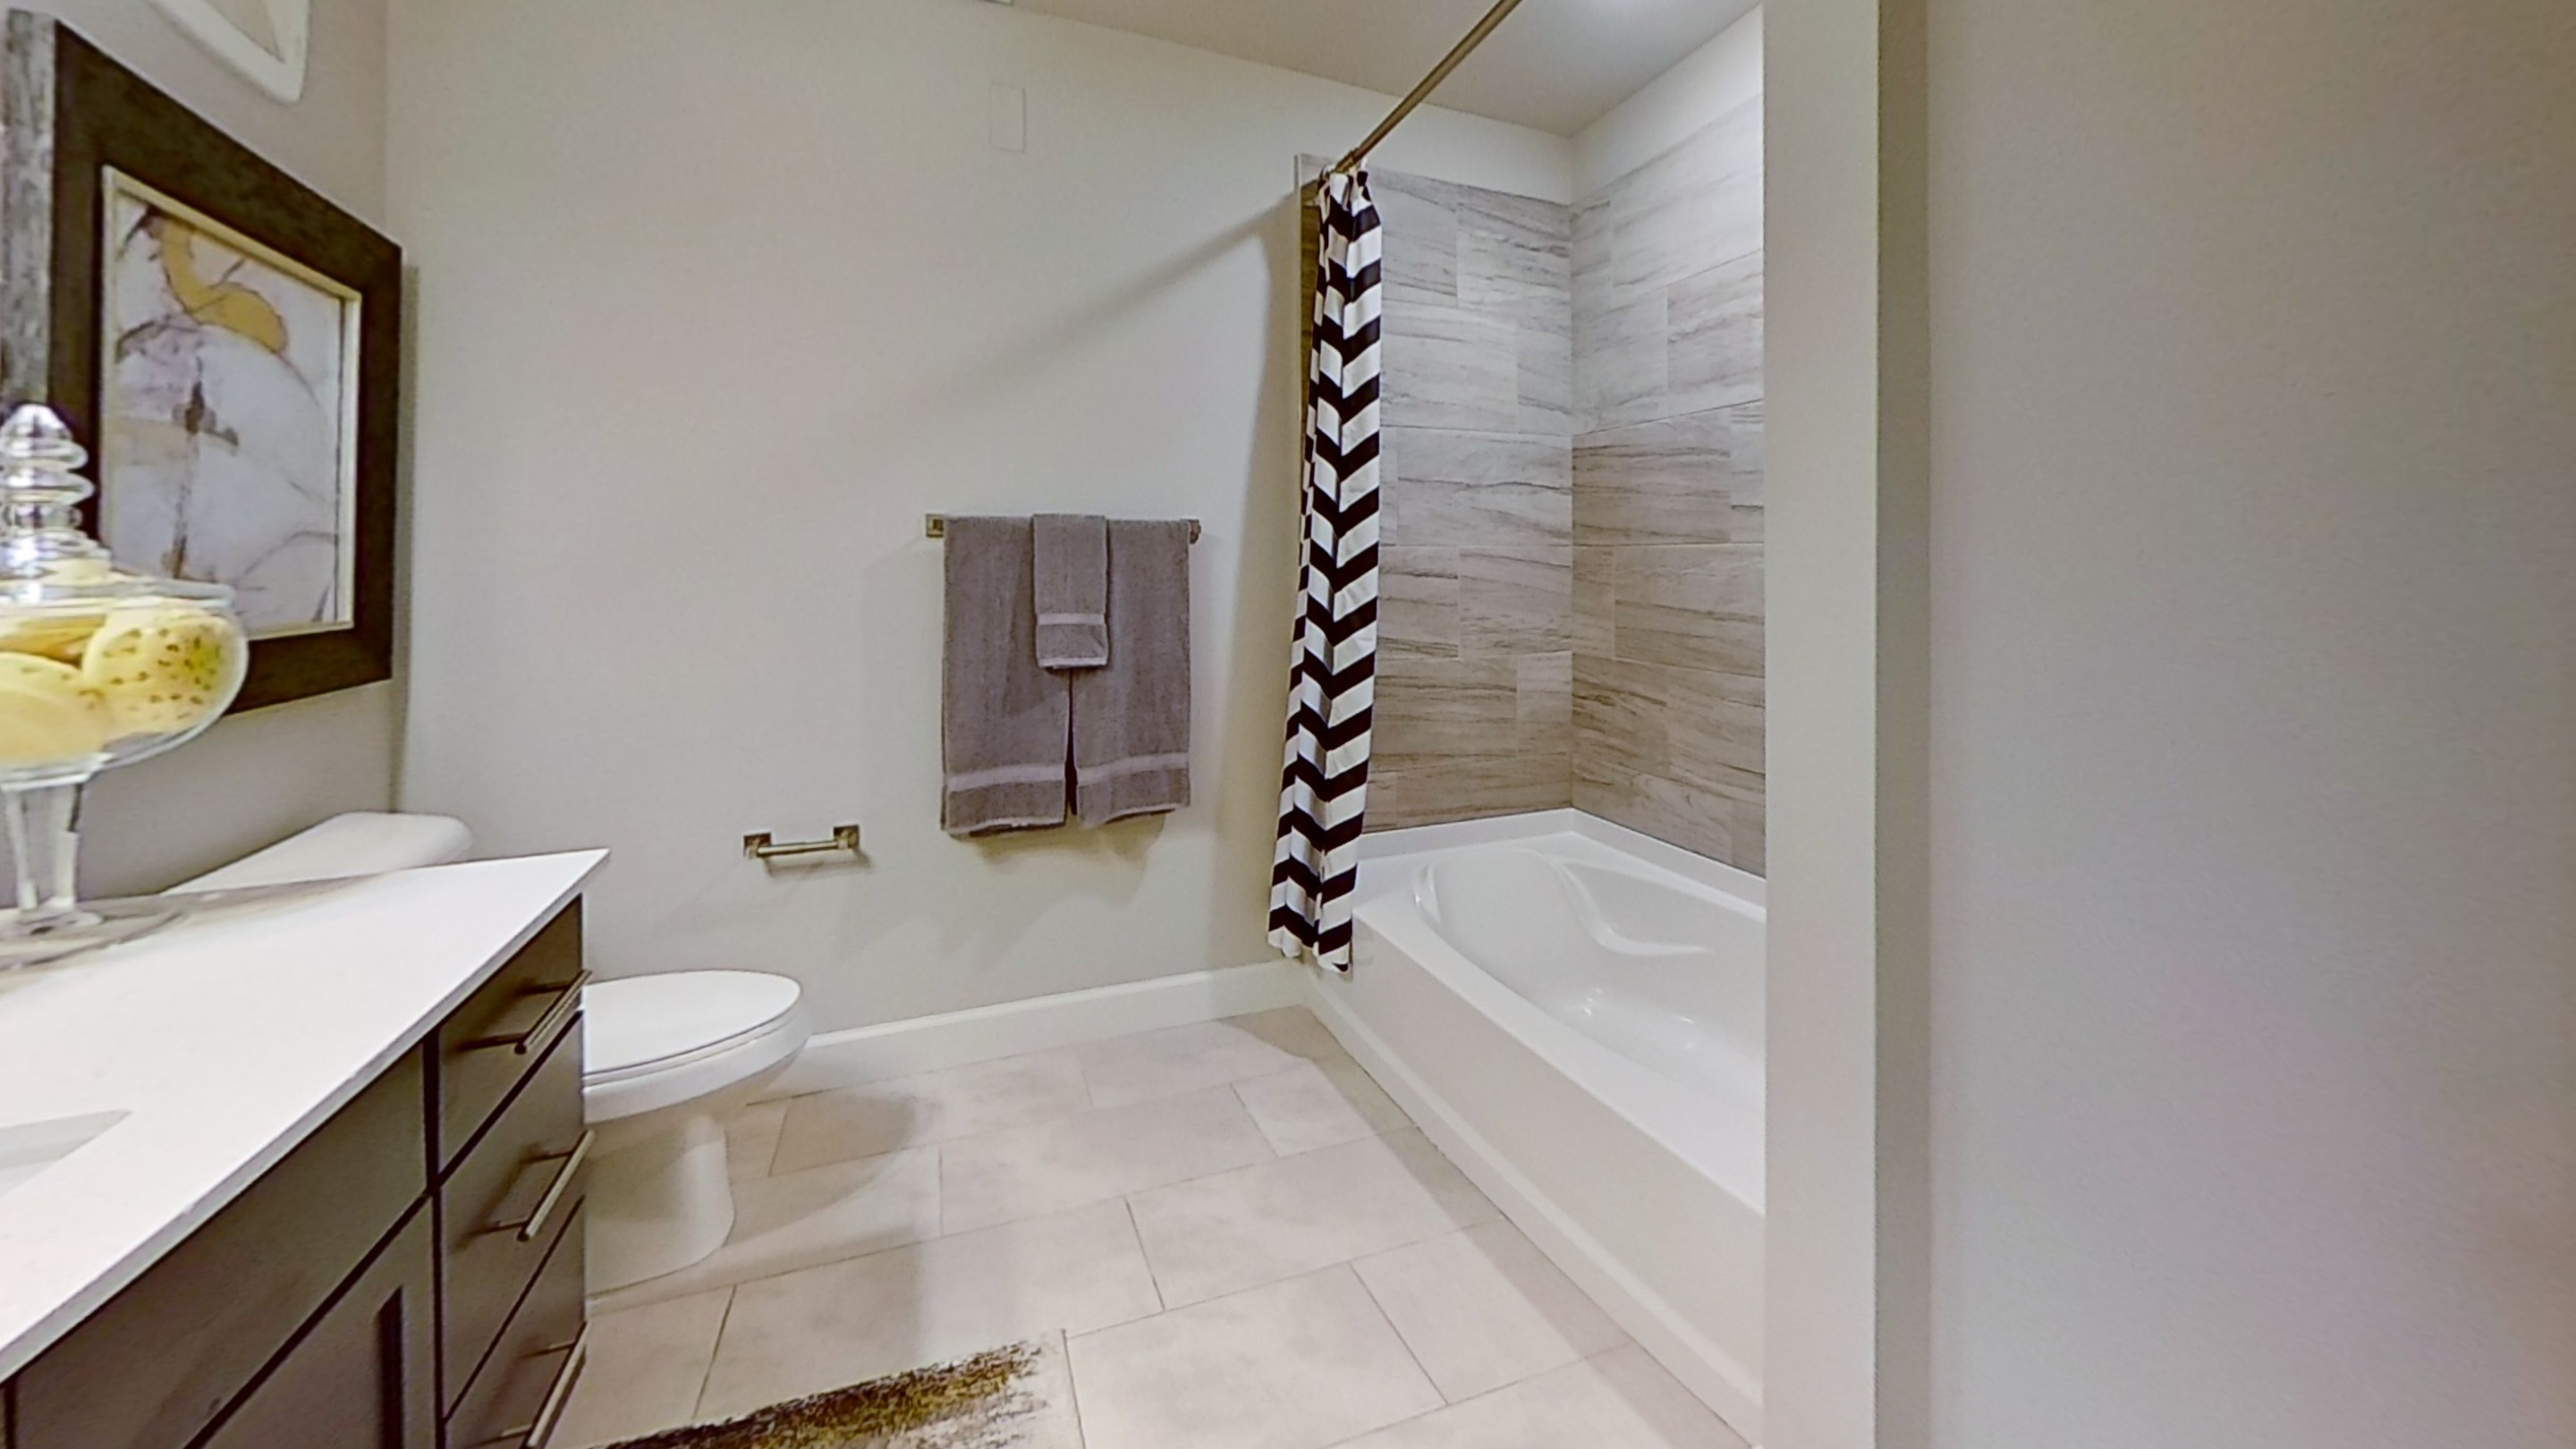 A3 Unit Bathroom at the Vue at Creve Coeur Apartments in Creve Coeur, MO